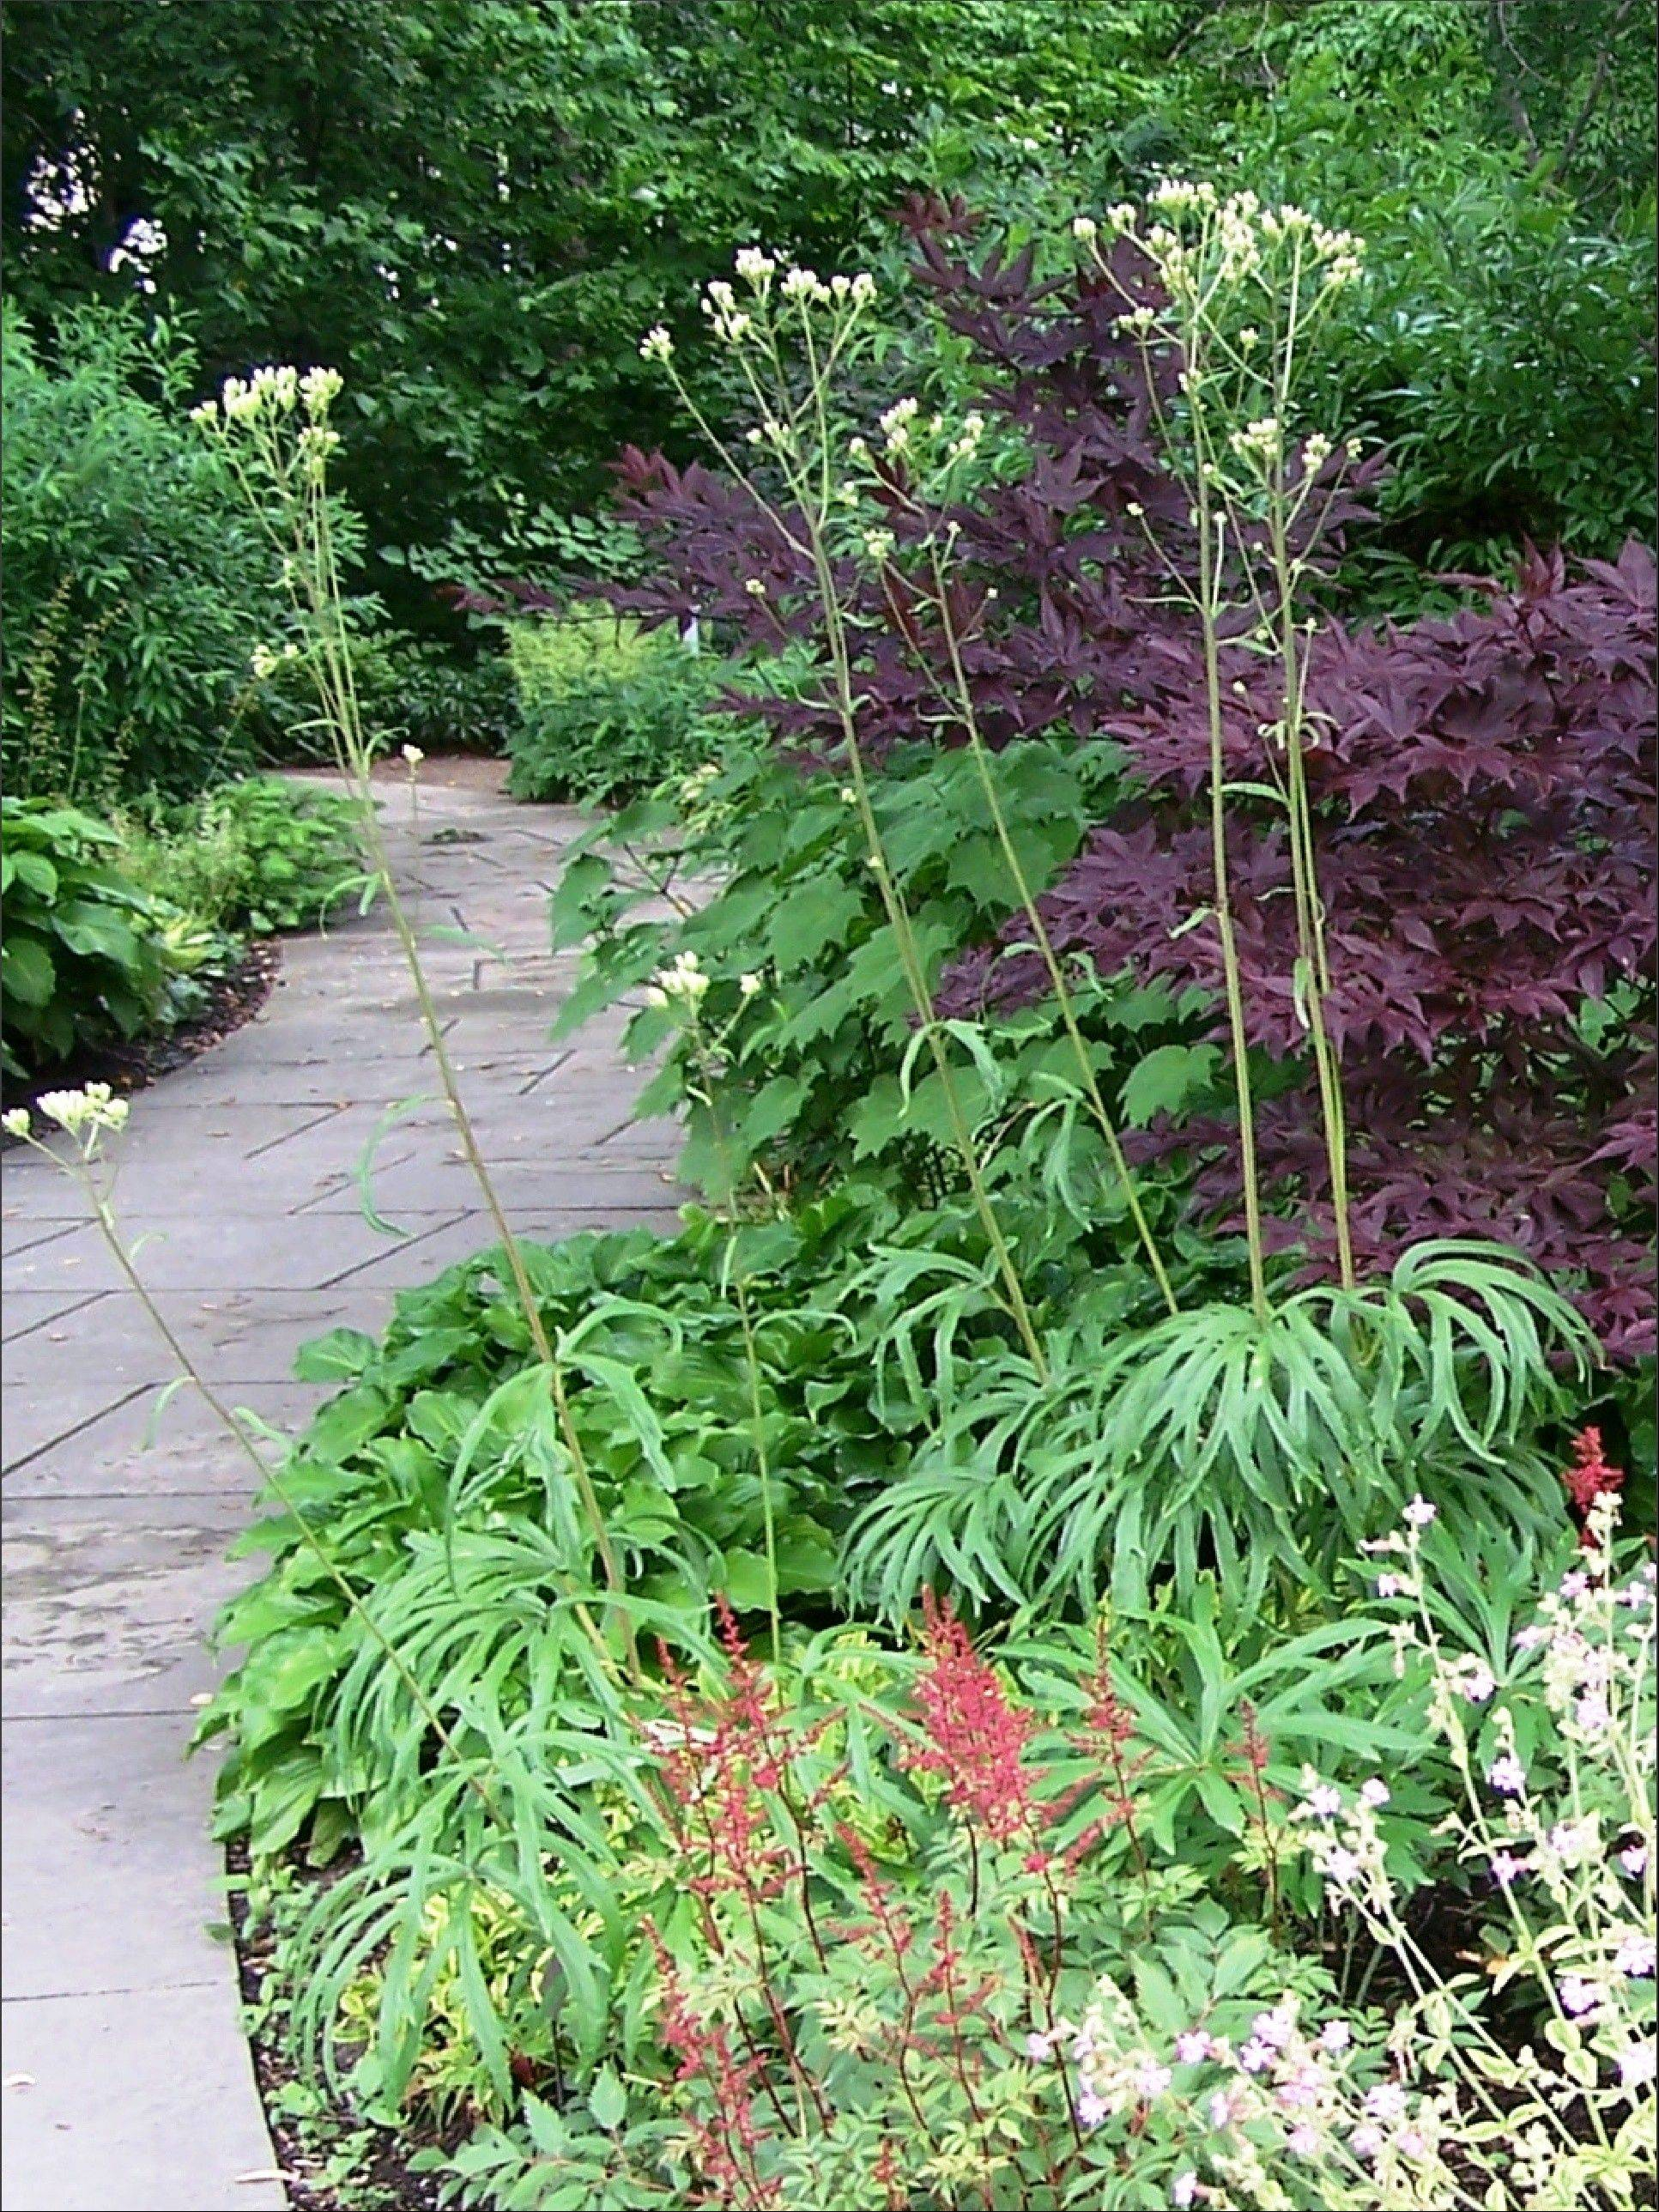 Now is a good time to look over your perennial bed to decide what you'd like to add.